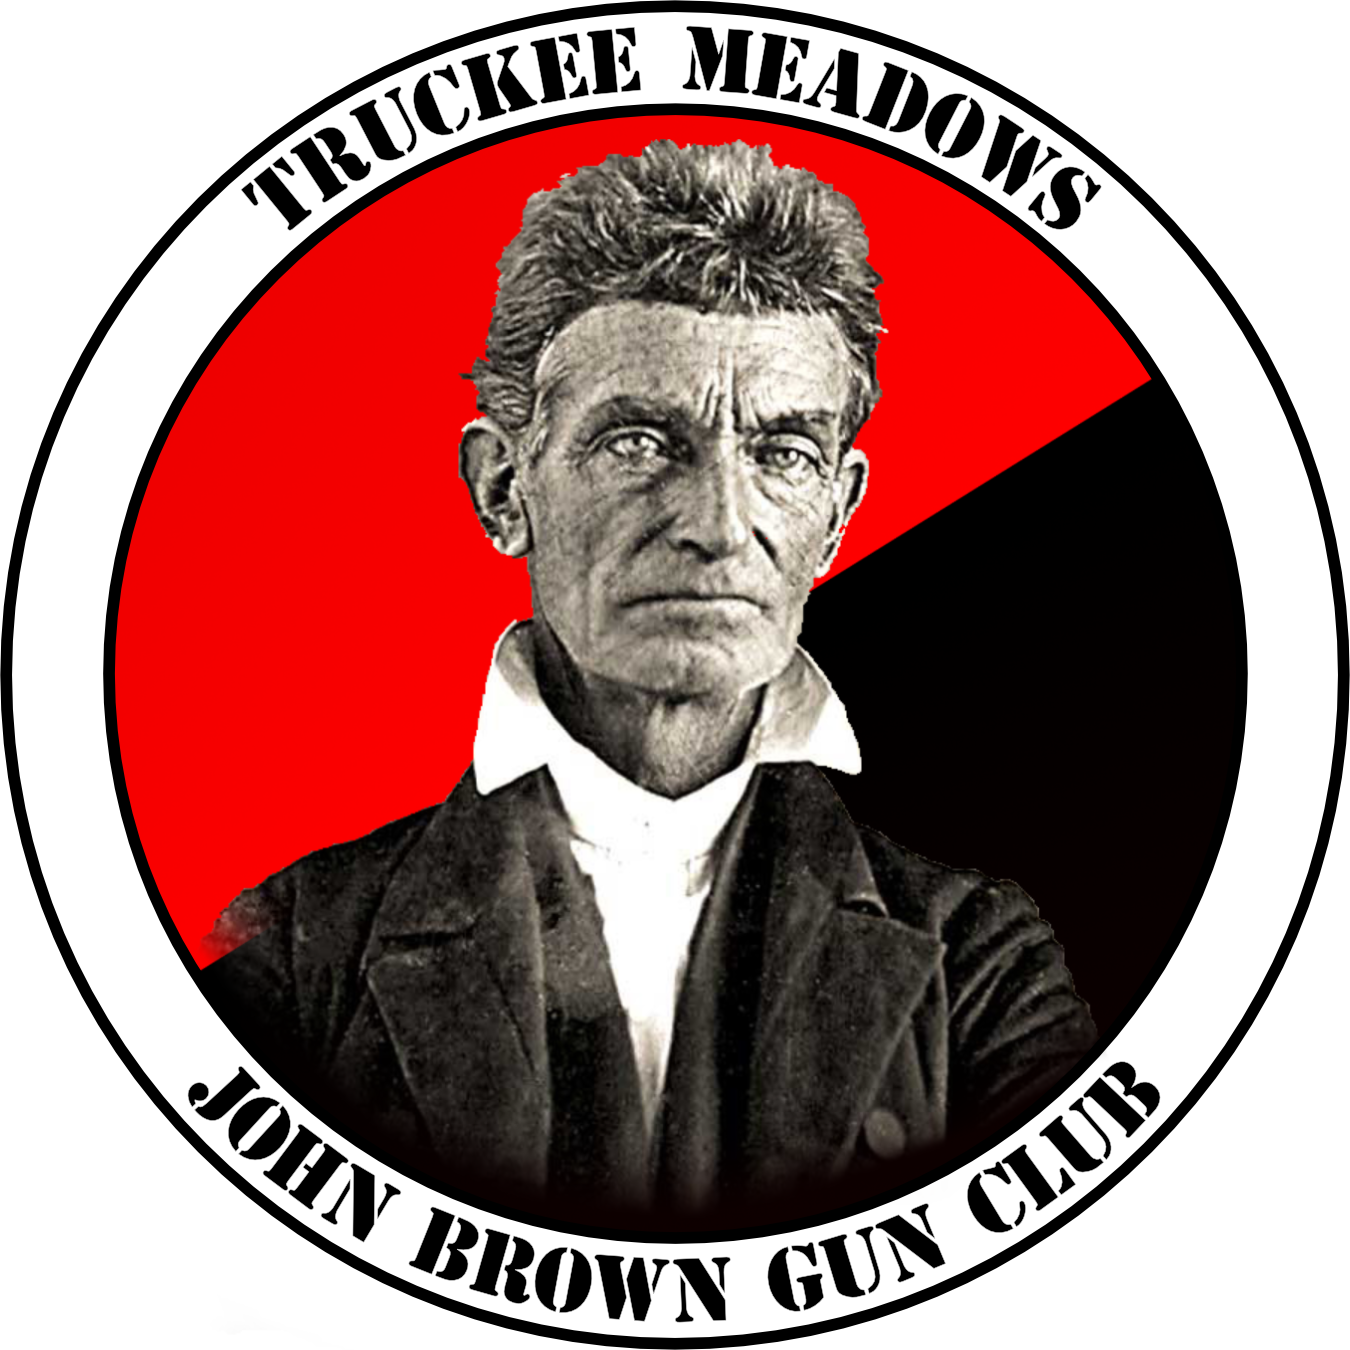 Logo depicting John Brown with a red and black anarchist background and the text 'Truckee Meadows John Brown Gun Club'